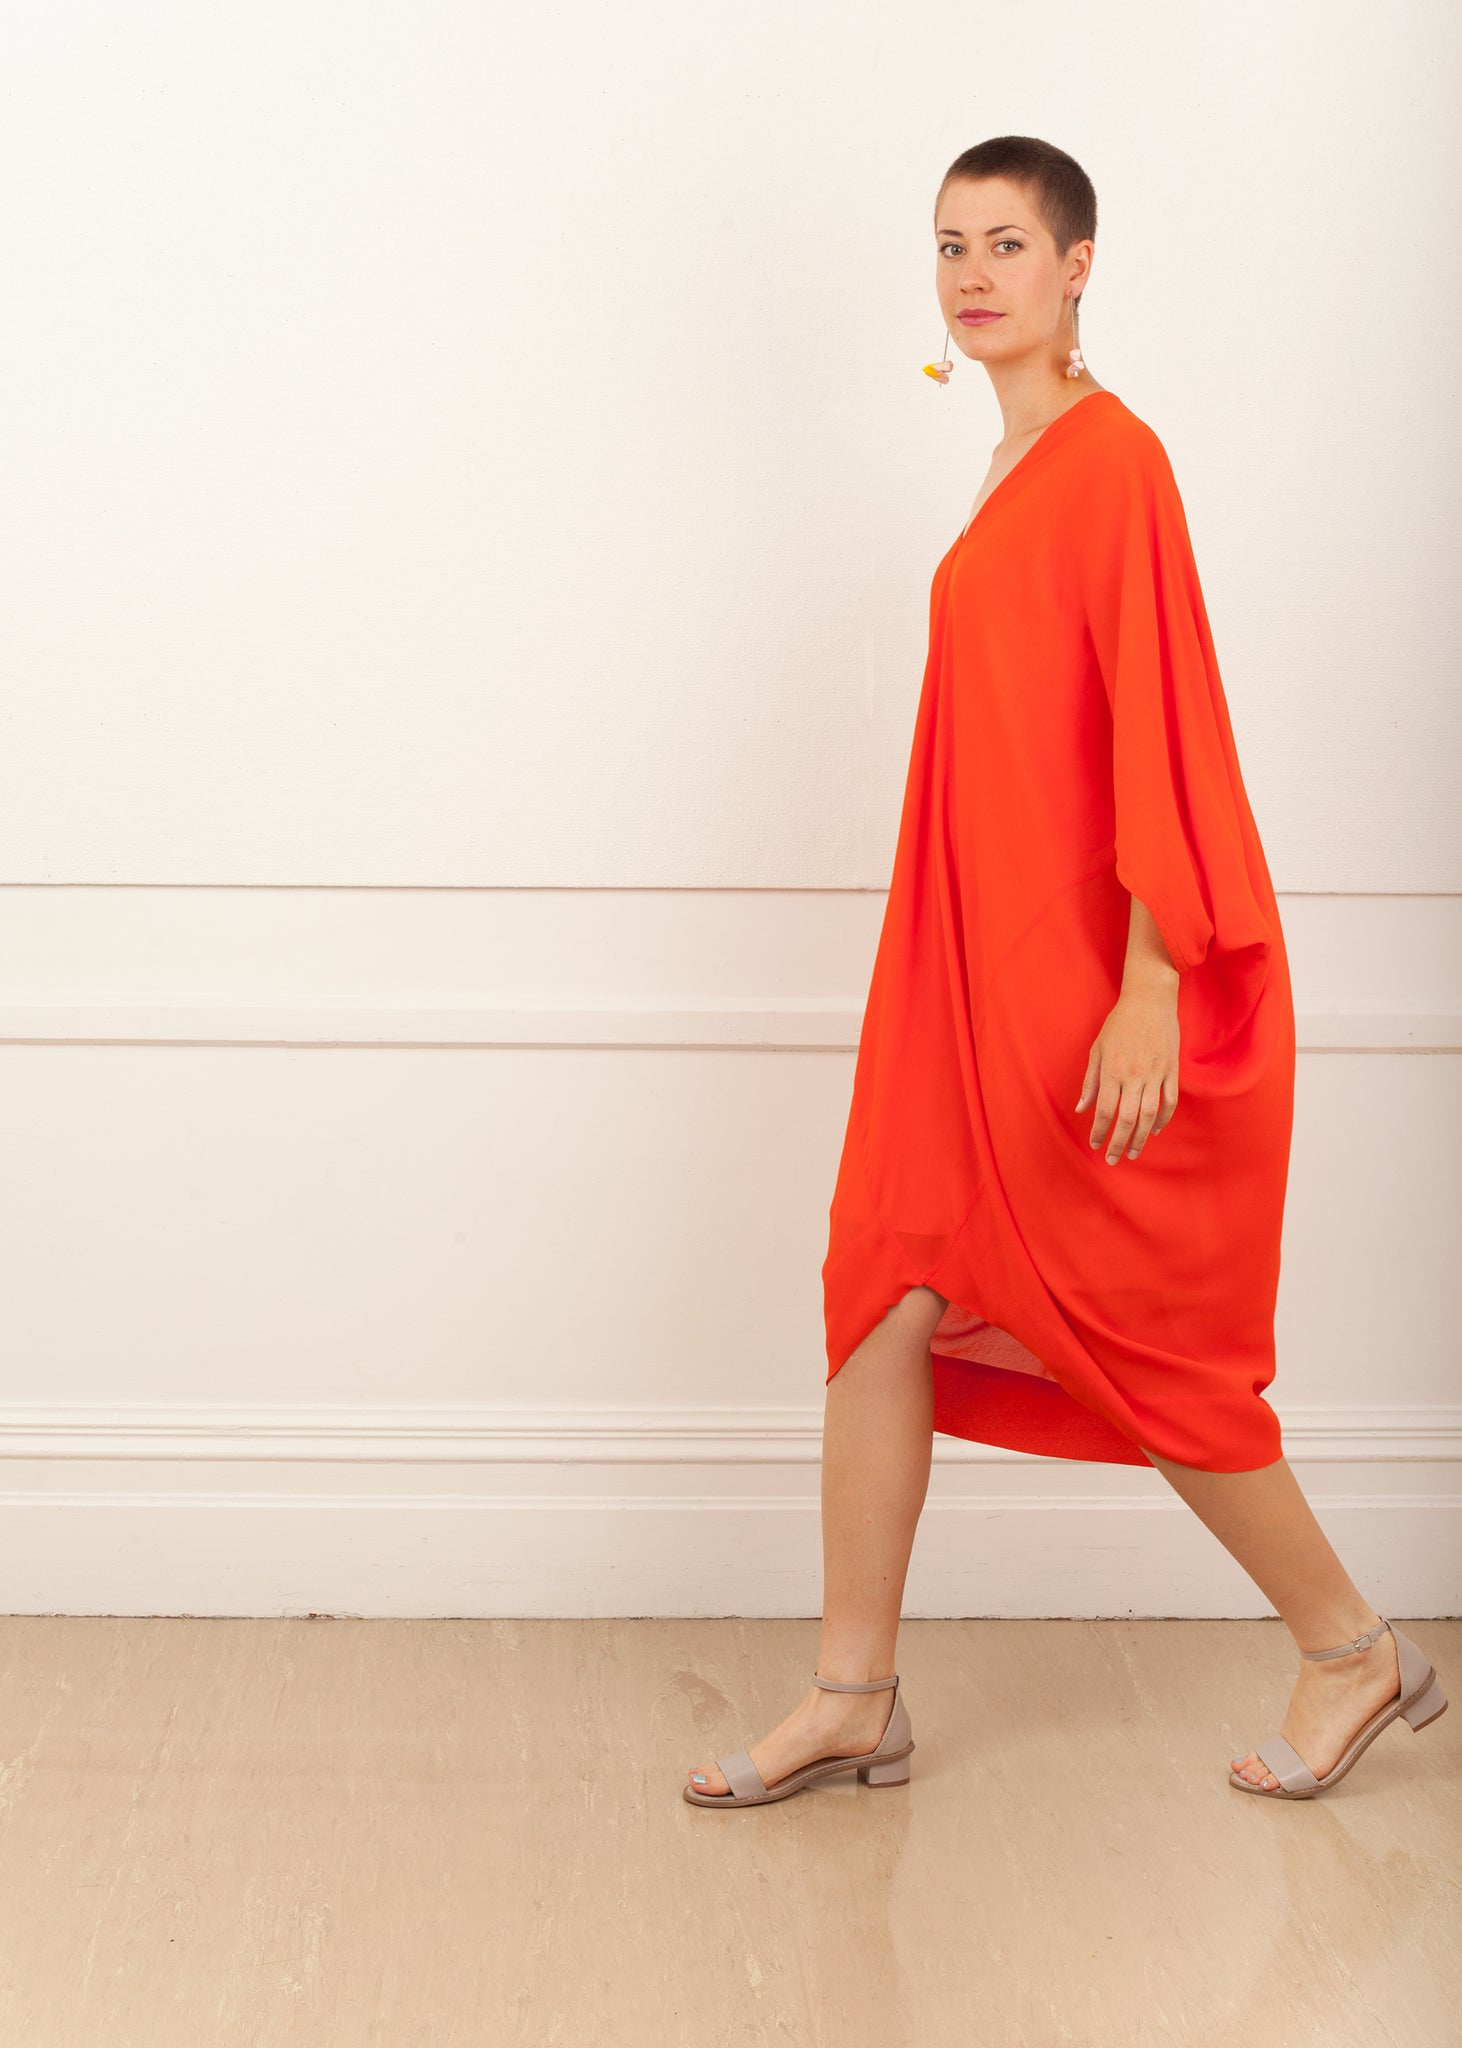 Fraser Crowe Diamond Dress Long Orange, ethical fashion, sustainable fashion, designer clothes, plus size clothing, textile print clothing, luxury online fashion, slow fashion